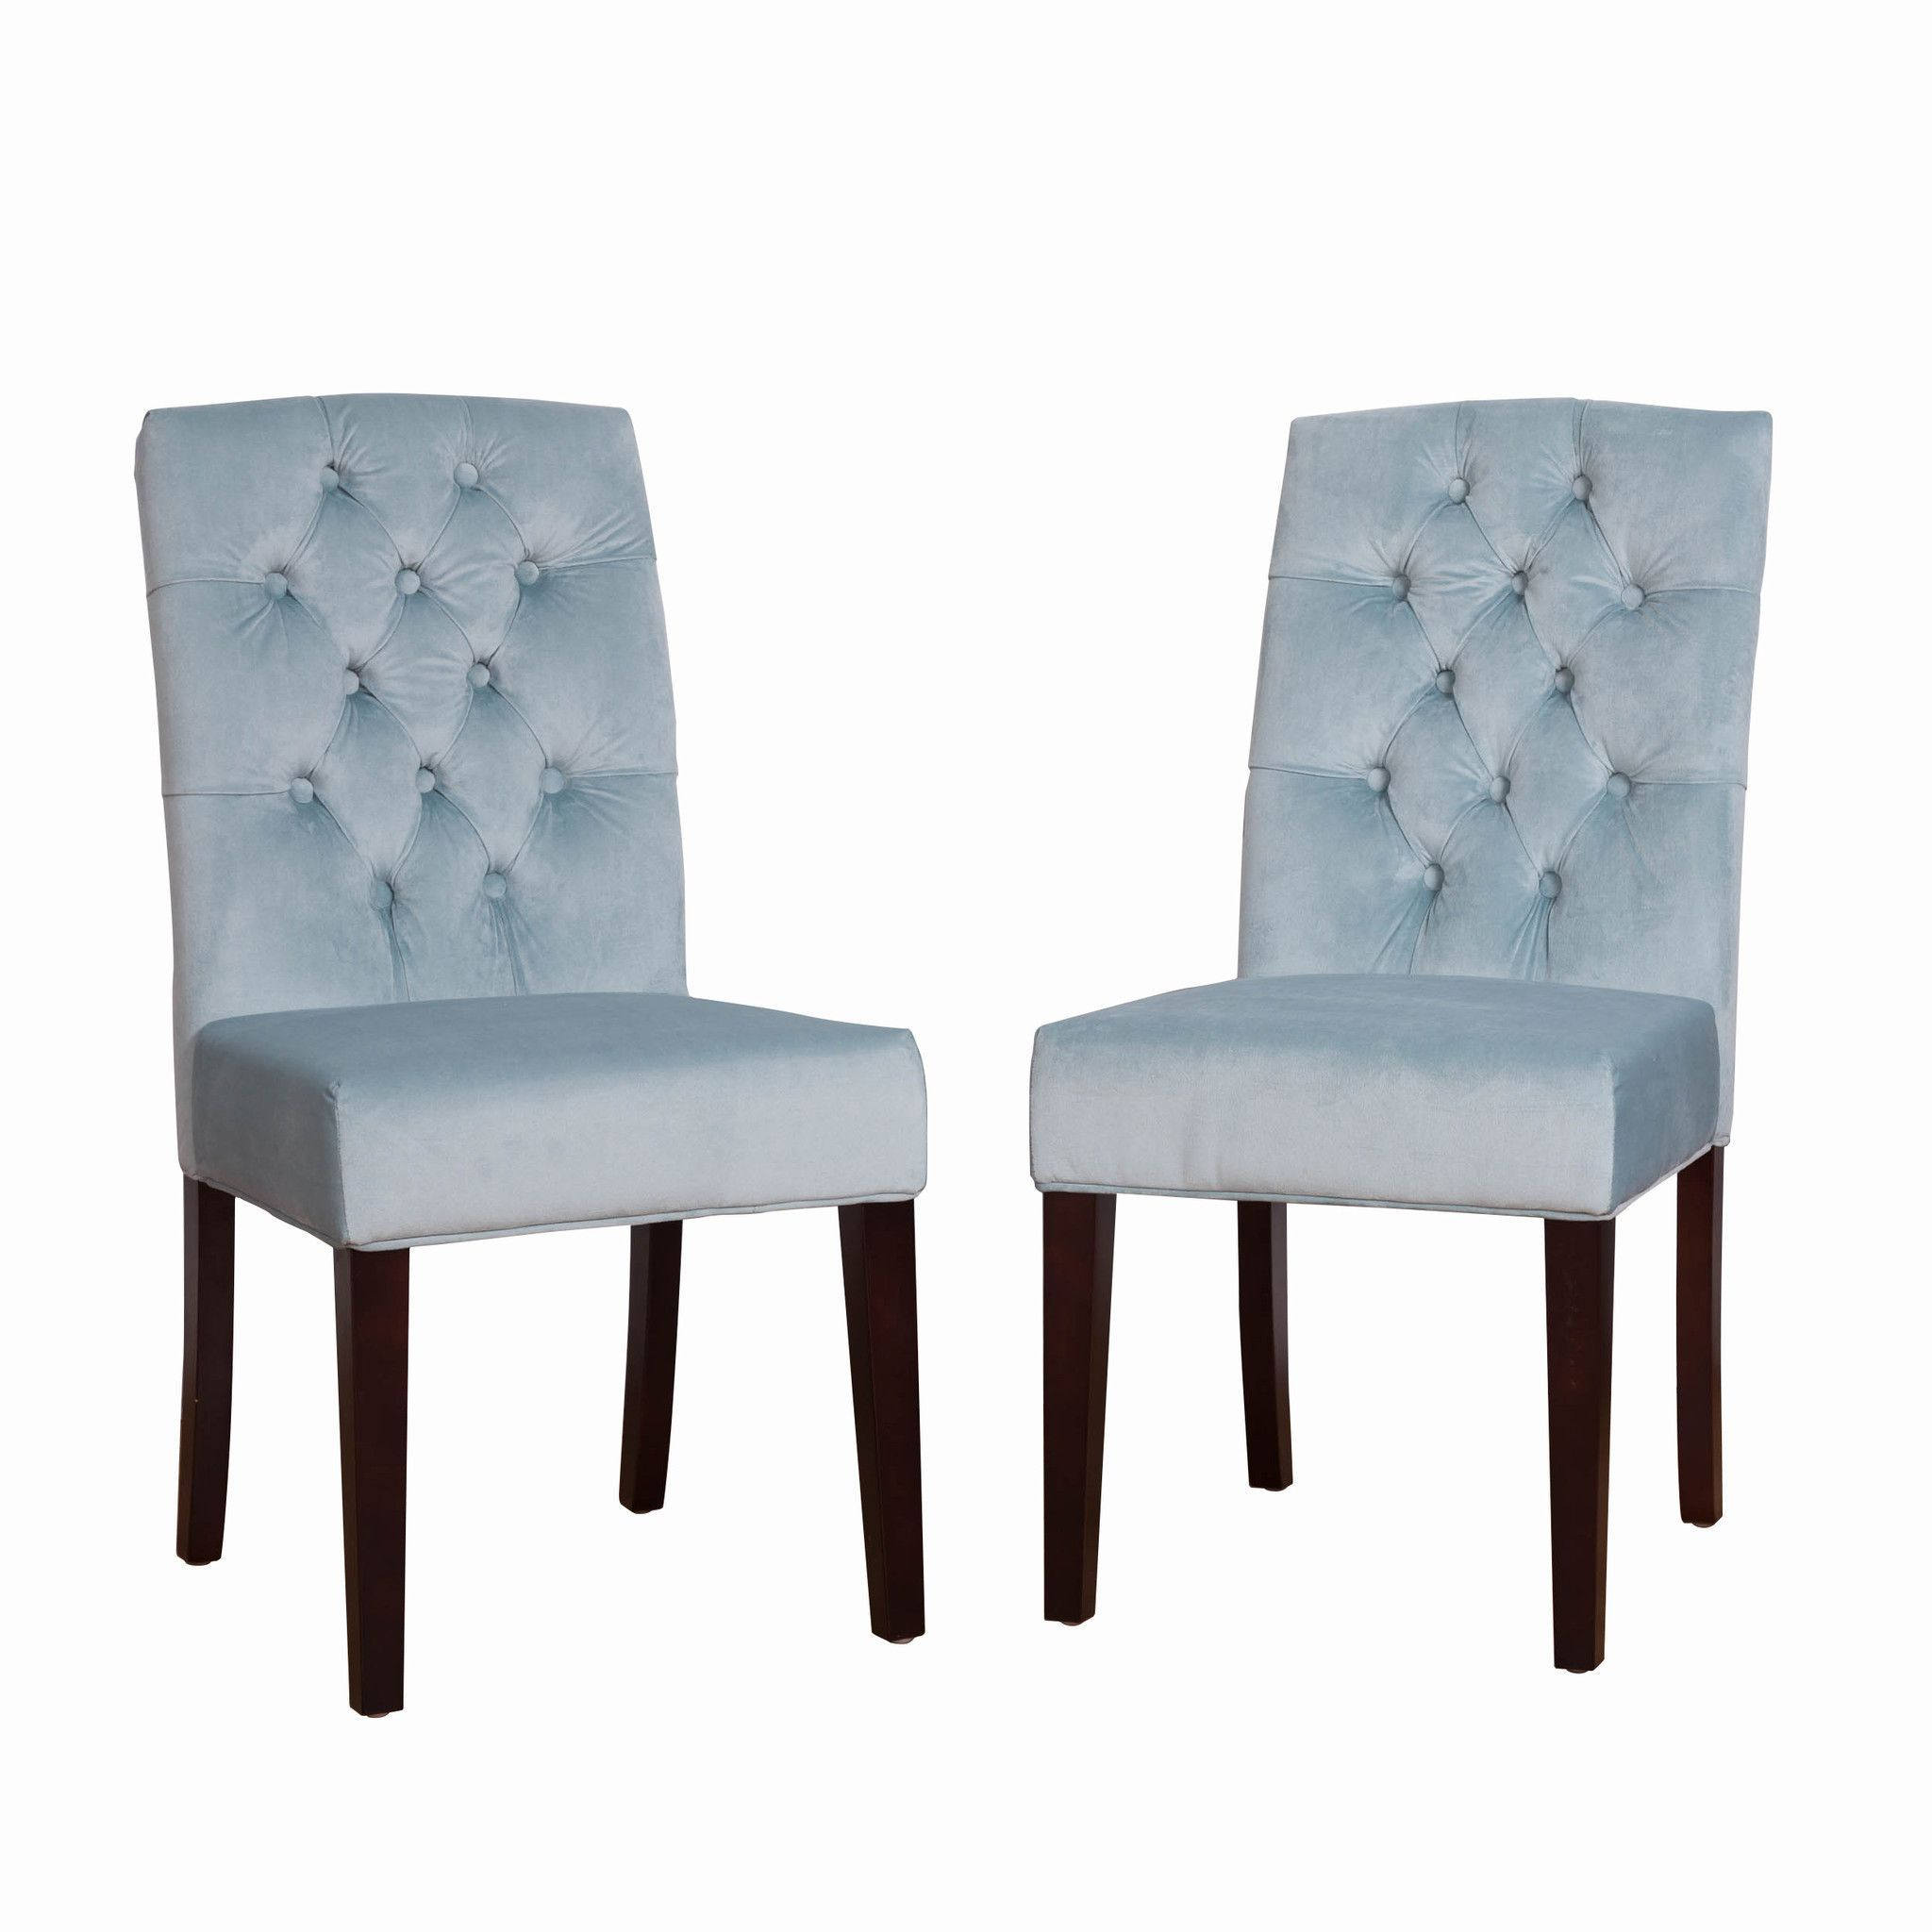 This Dining Chair Set Of 2 From Michael Anthony Furniture Adds A  Sophisticated Pop Of Color To Any Dining Space. The Blue Microfiber  Upholstery And Sleek ...